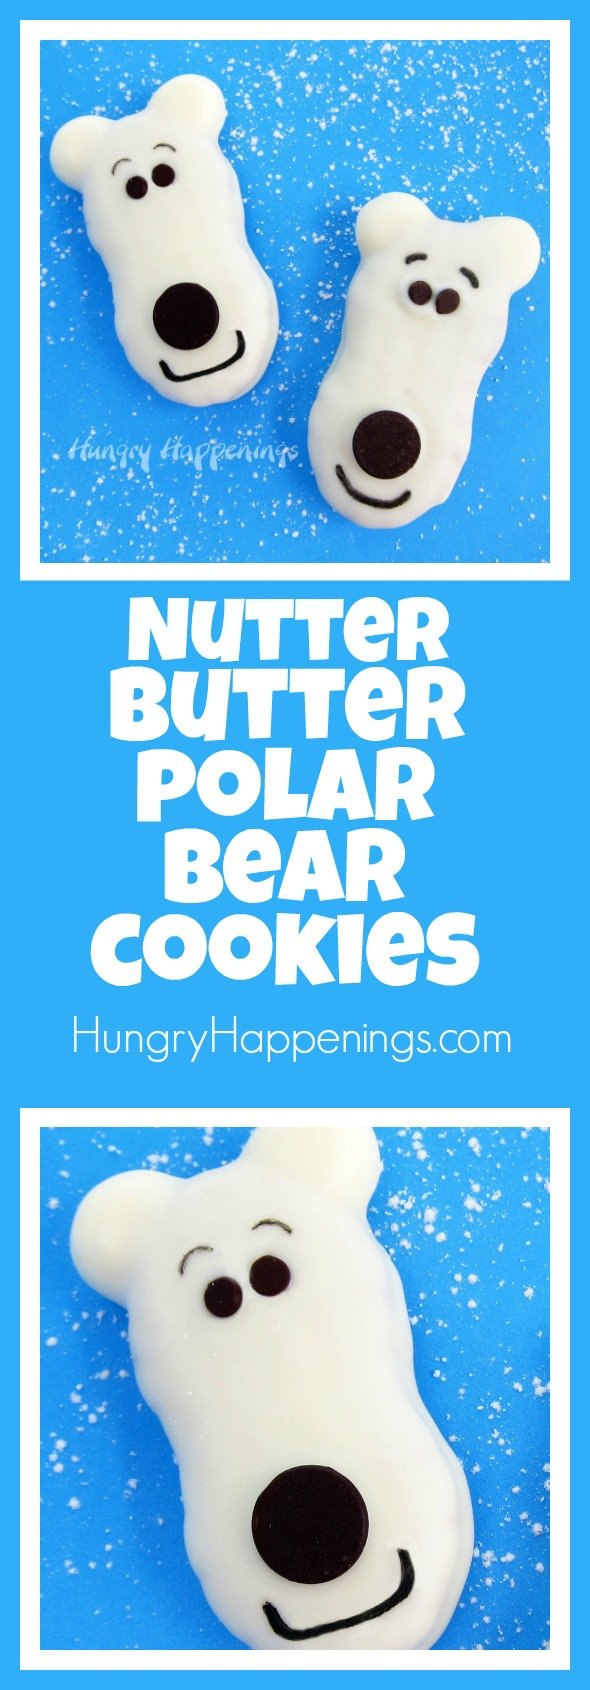 nutter-butter-polar-bear-cookies